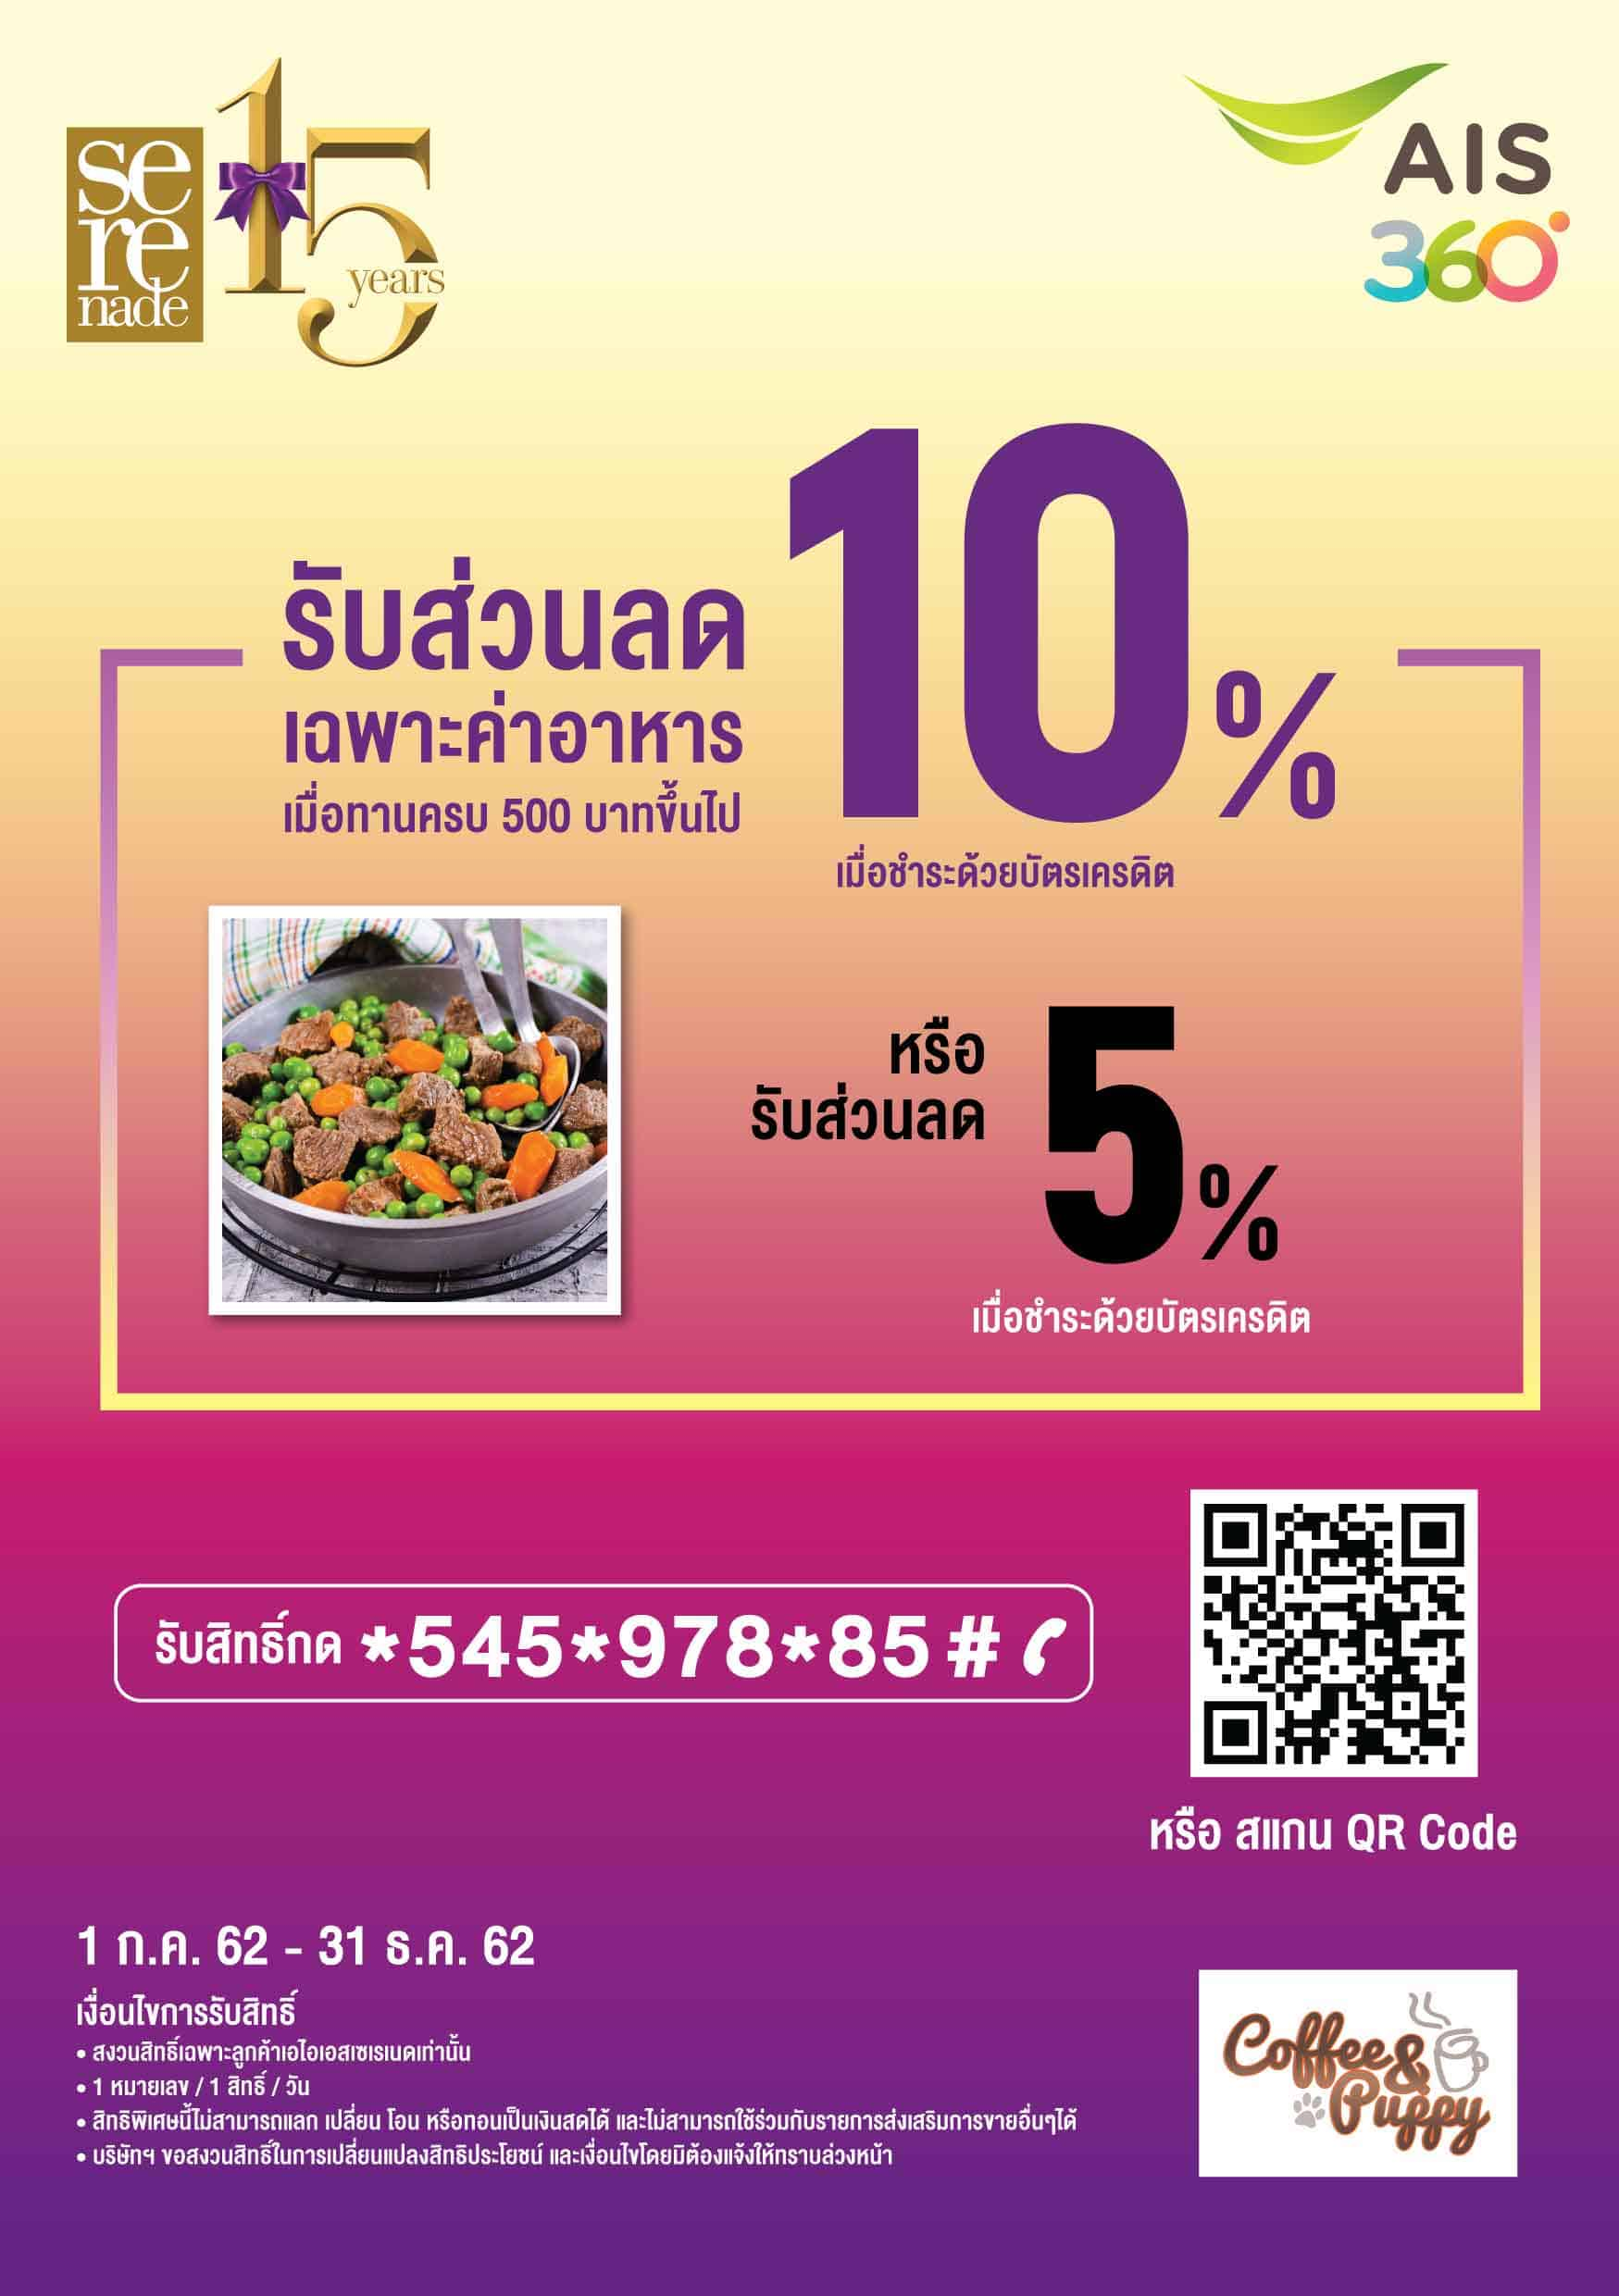 Promotion From AIS Serenade